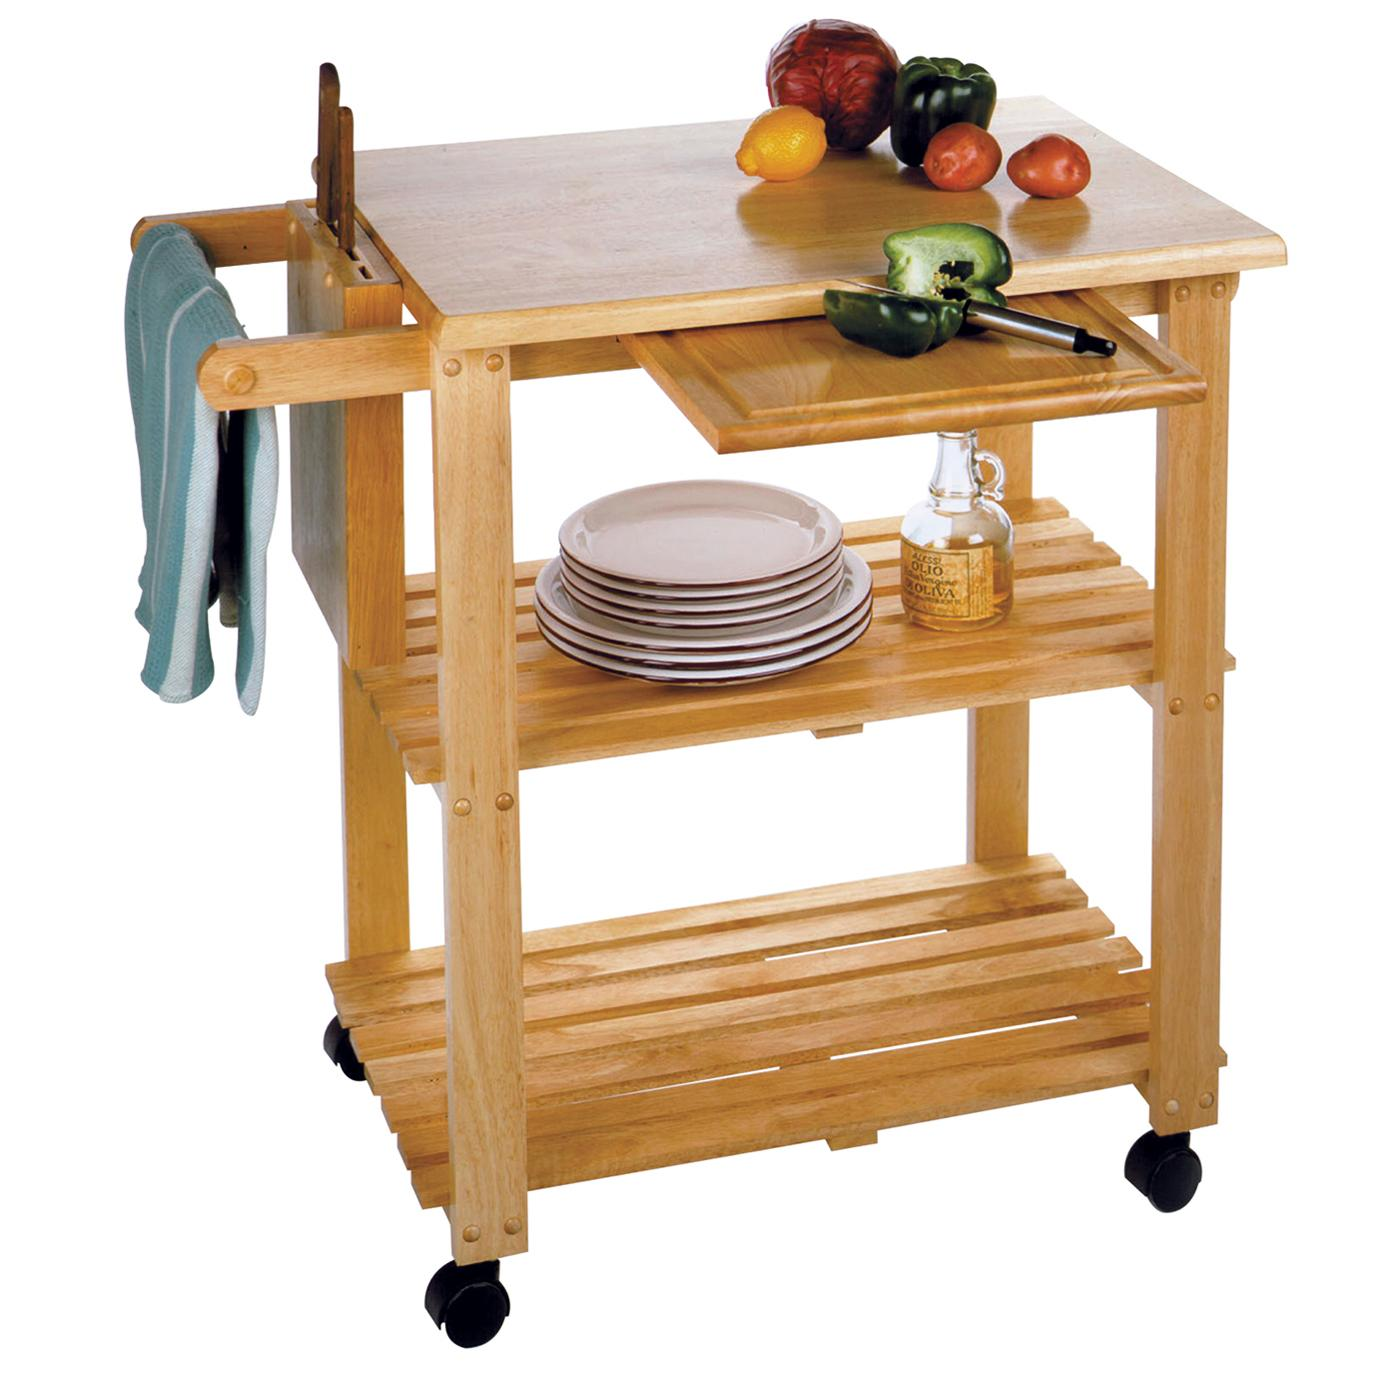 Winsome Kitchen Cart With Cutting Board Knife Block And Shelves By Oj Commerce 89933